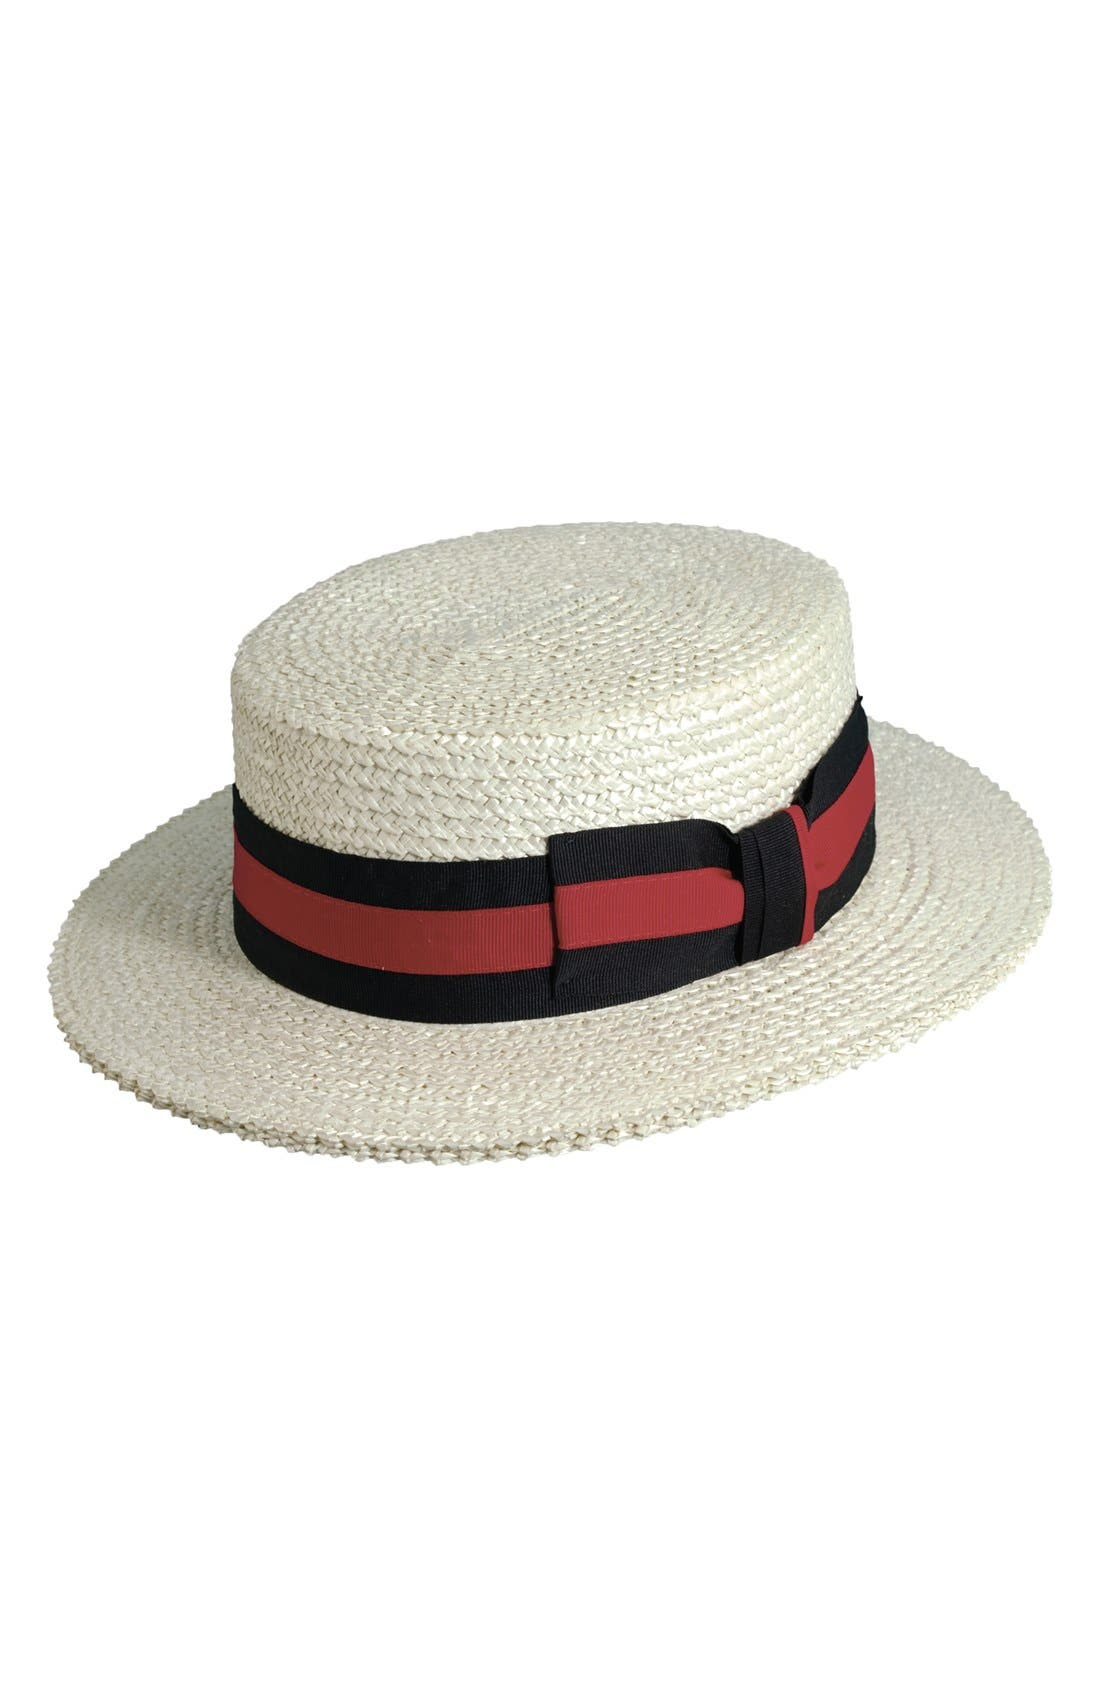 Straw Boater Hat,                             Main thumbnail 1, color,                             BLEACH